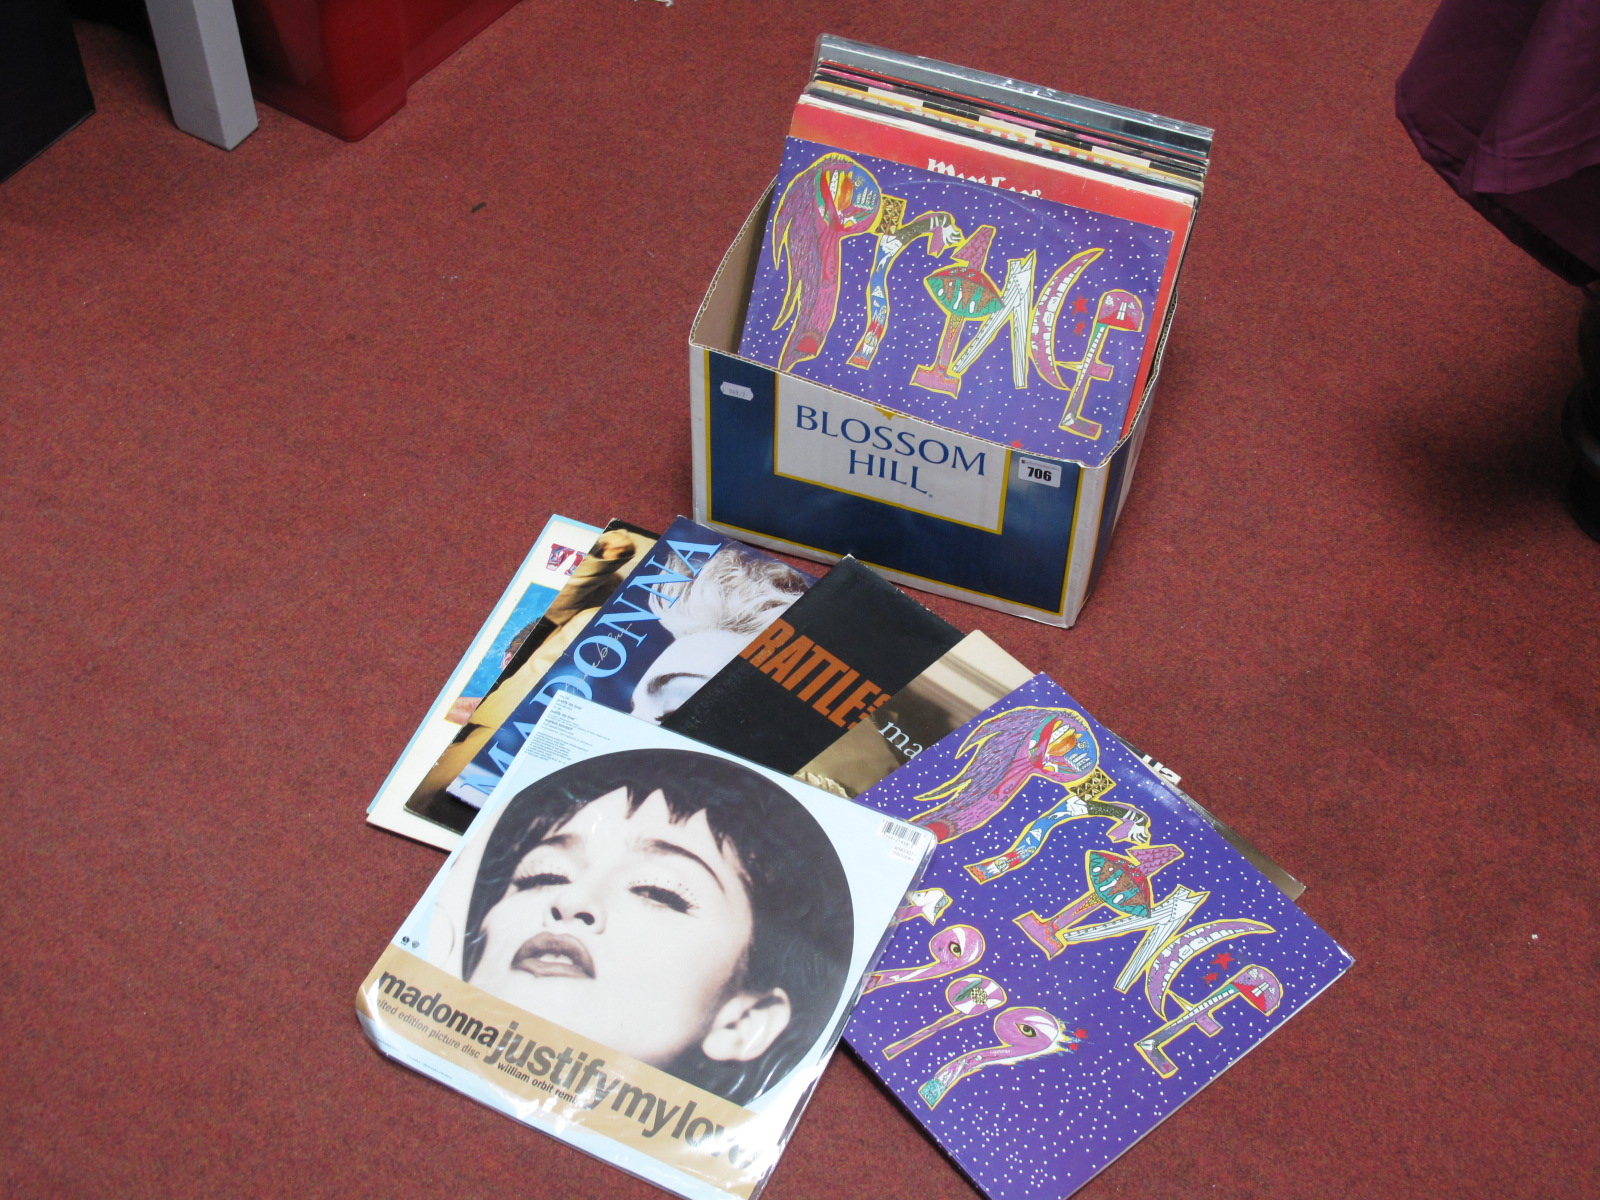 """Lot 706 - Madonna 'Justify My Love' Limited Edition 12"""" Picture Disc, Prince 1999 LP, U2 'Rattle and Hum'"""